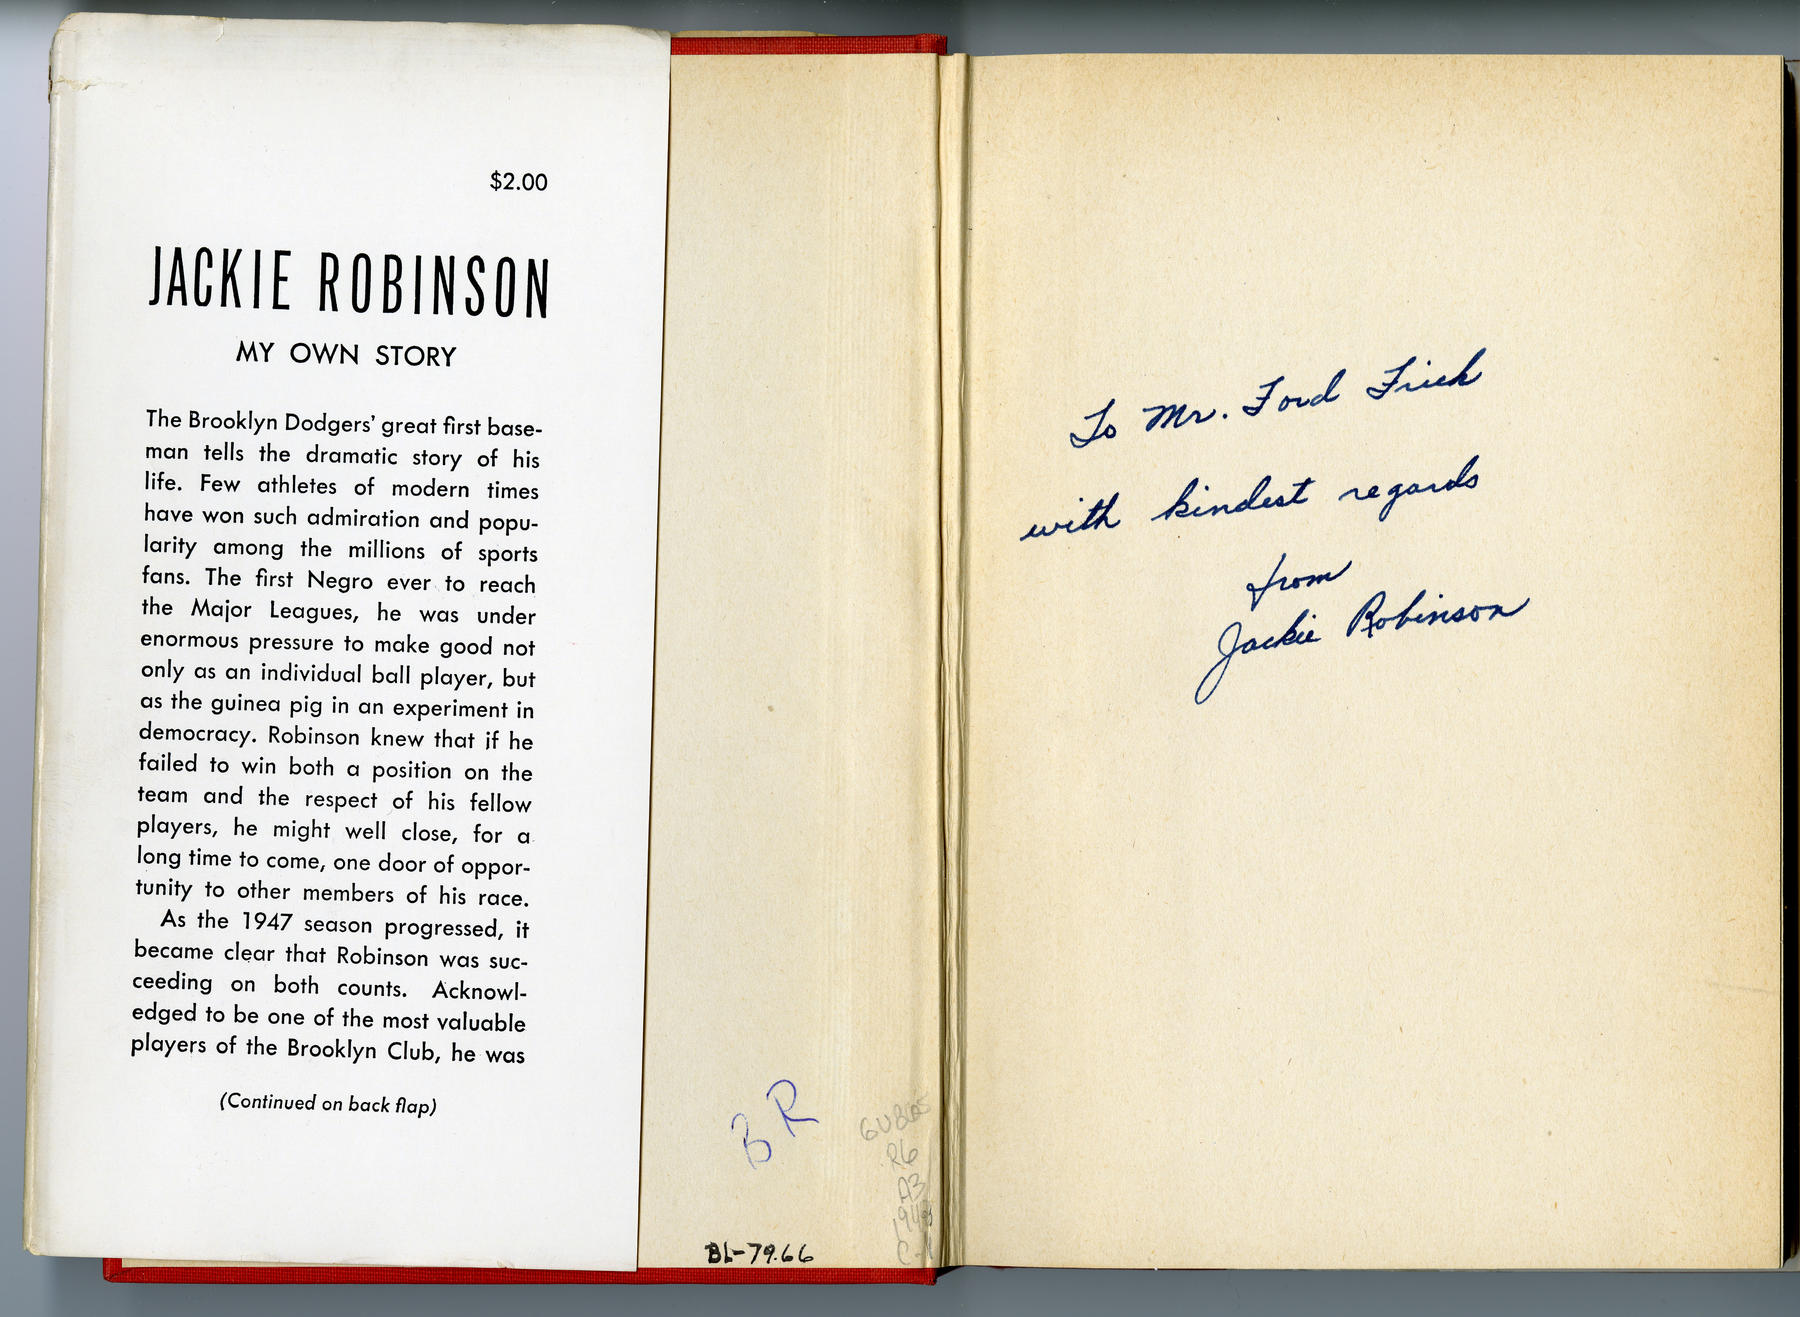 """This copy of Jackie Robinson's """"My Own Story"""" was presented to former Comissioner Ford Frick. BL-79.66 (National Baseball Hall of Fame Library)"""